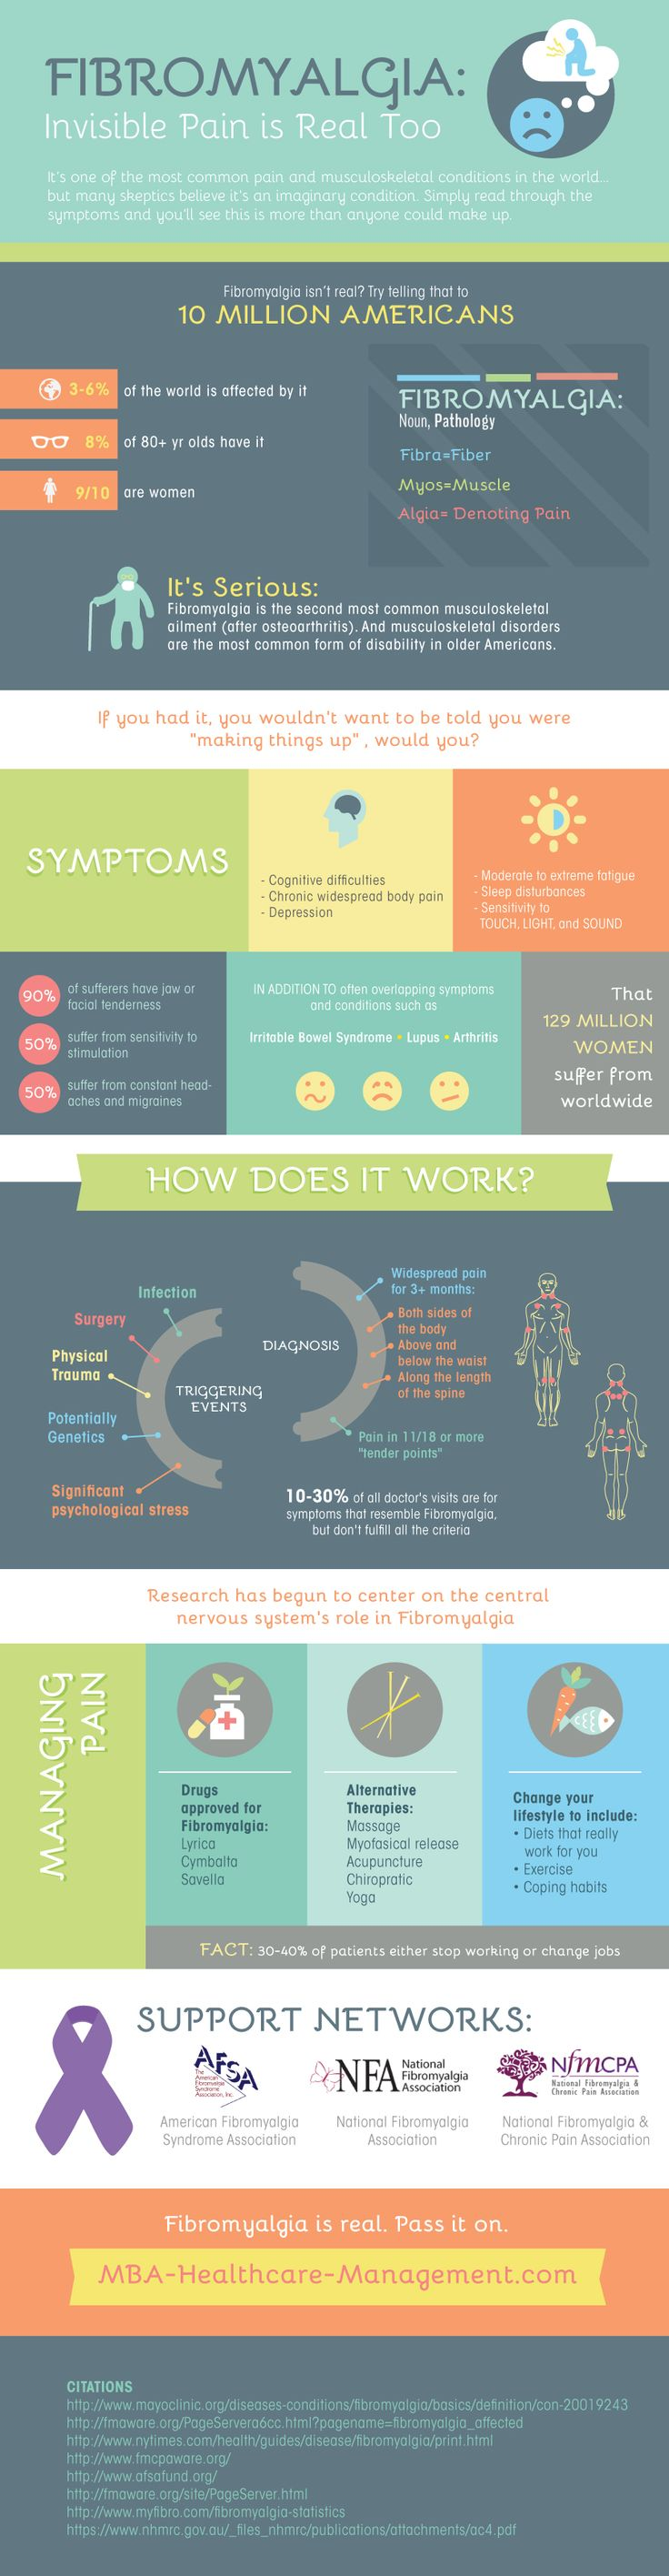 Fibromyalgia affects as many as 10 million Americans ages 18 and older, and 3% to 6% of the global population. Ouch! This infographic reveals what you need to know about this debilitating affliction, and what to do about it to manage the pain: